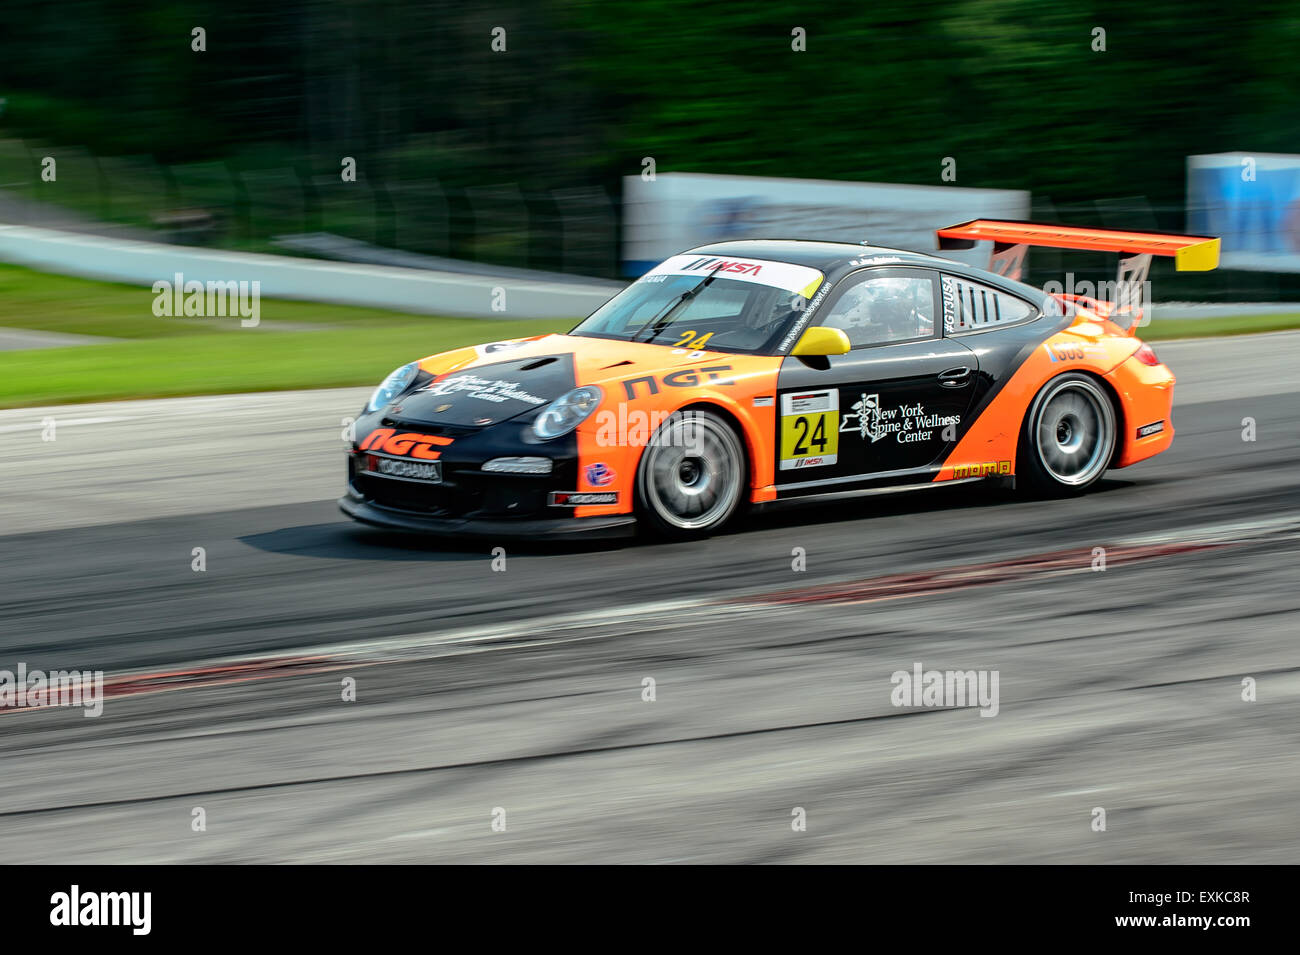 Bowmanville, CAN., 12 Jul 2015 - at the Mobil 1 SportsCar Grand Prix at Canadian Tire Motorsport Park - Mosport Stock Photo